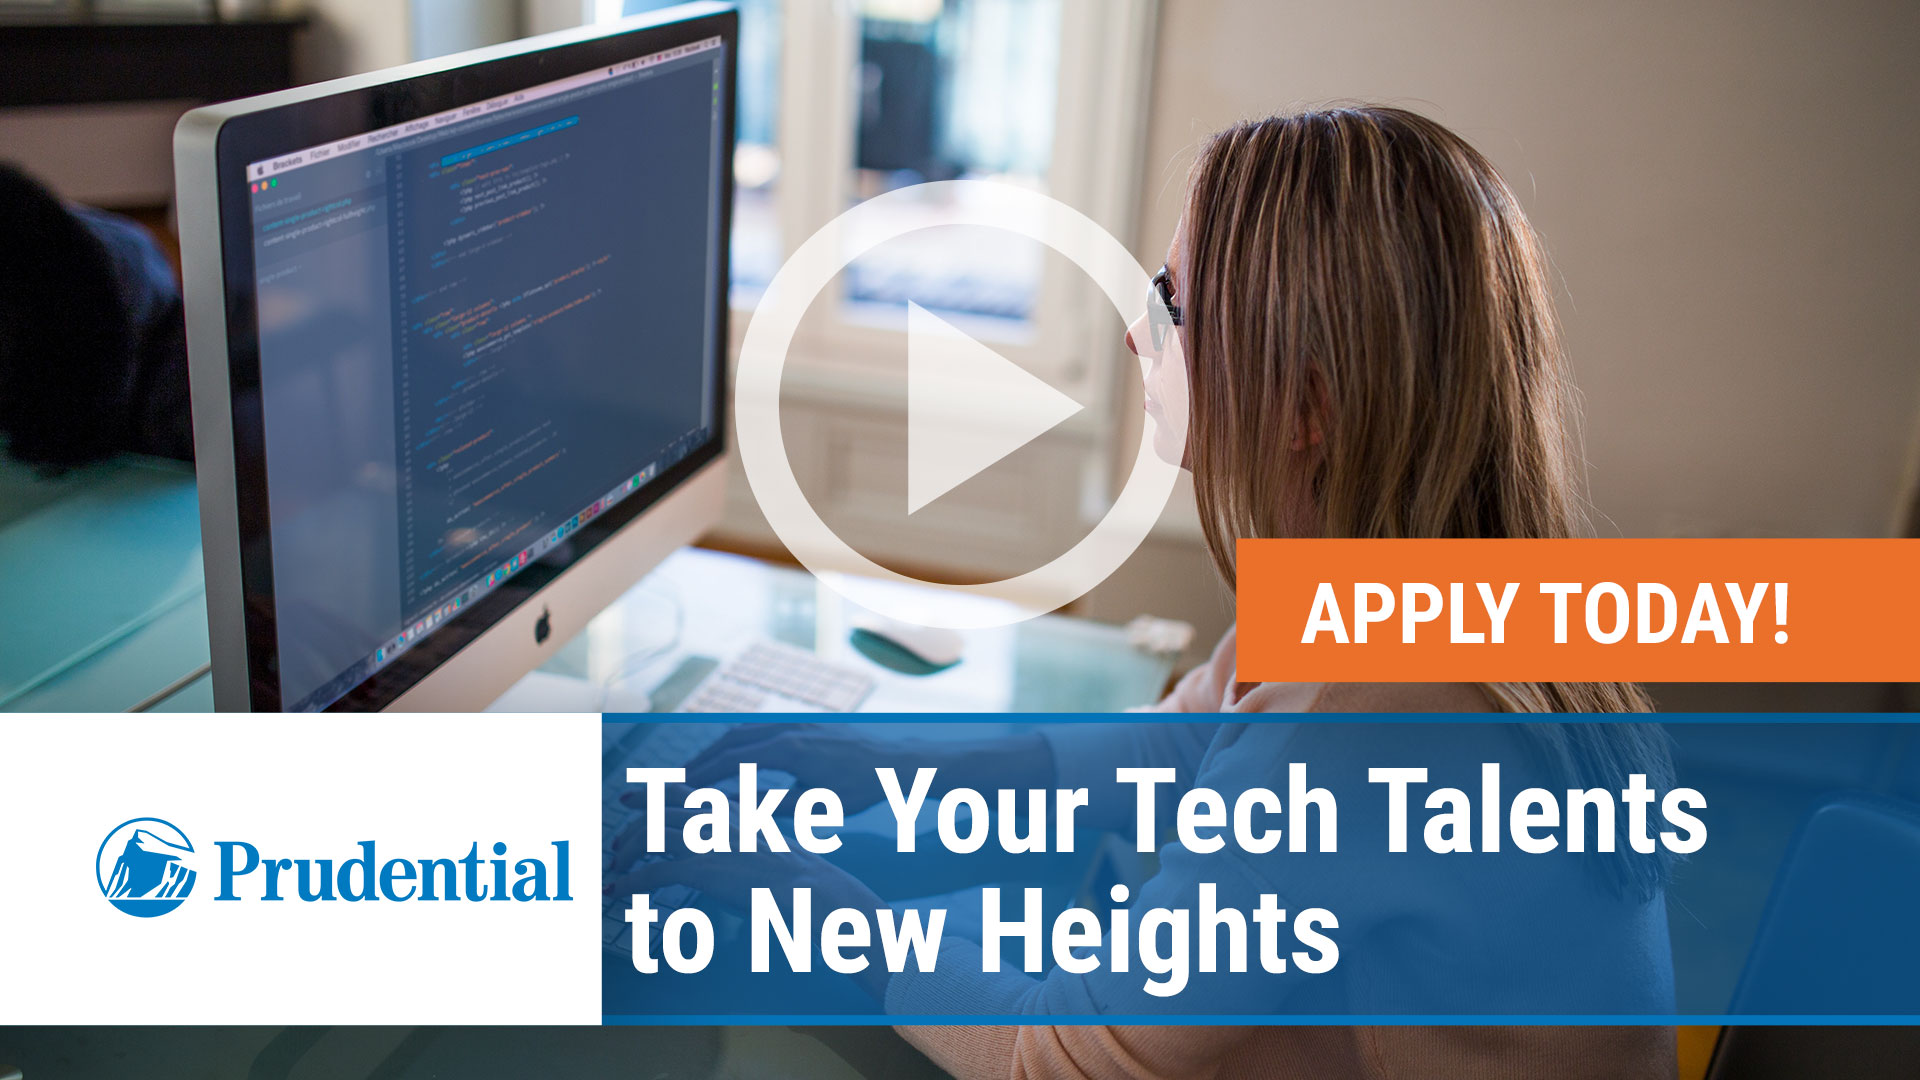 Watch our careers video for available job opening Take Your Tech Talents to New Heights in Iselin NJ, Hartford CT, Sunny